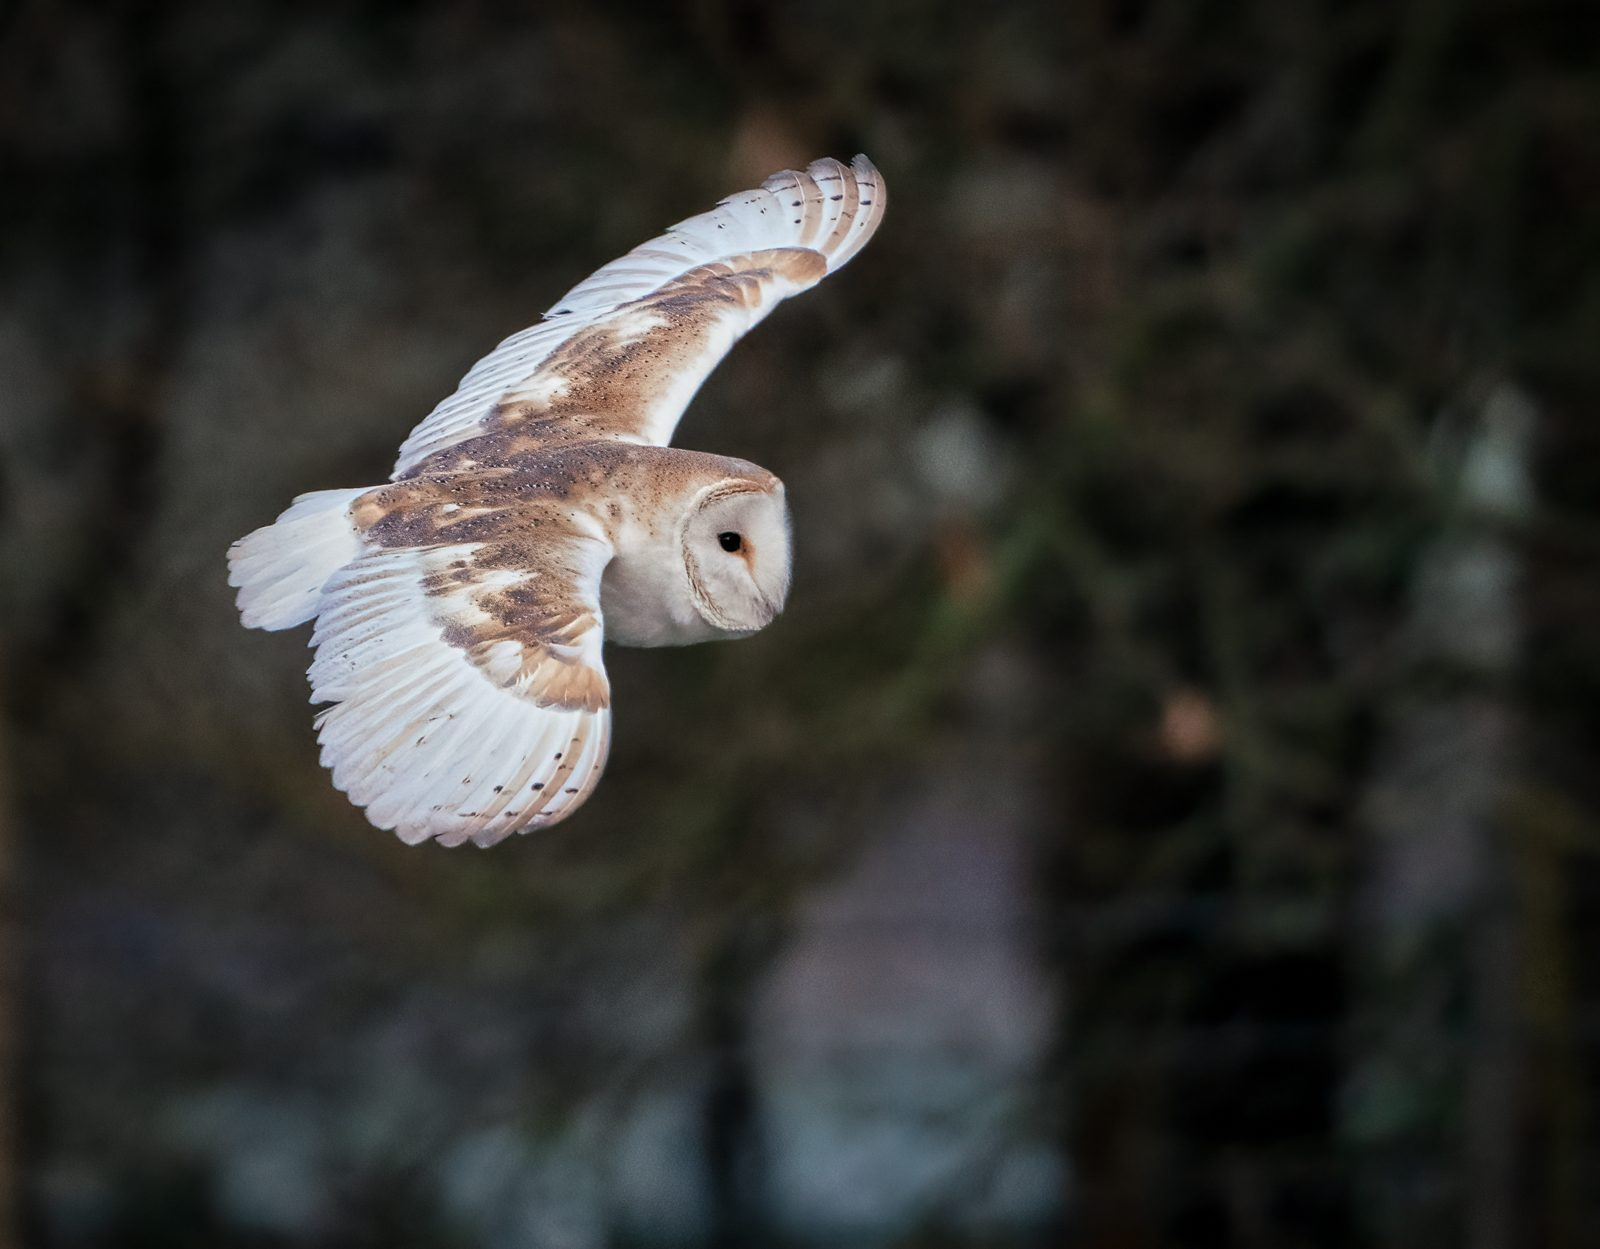 Frosty Morning barnowl